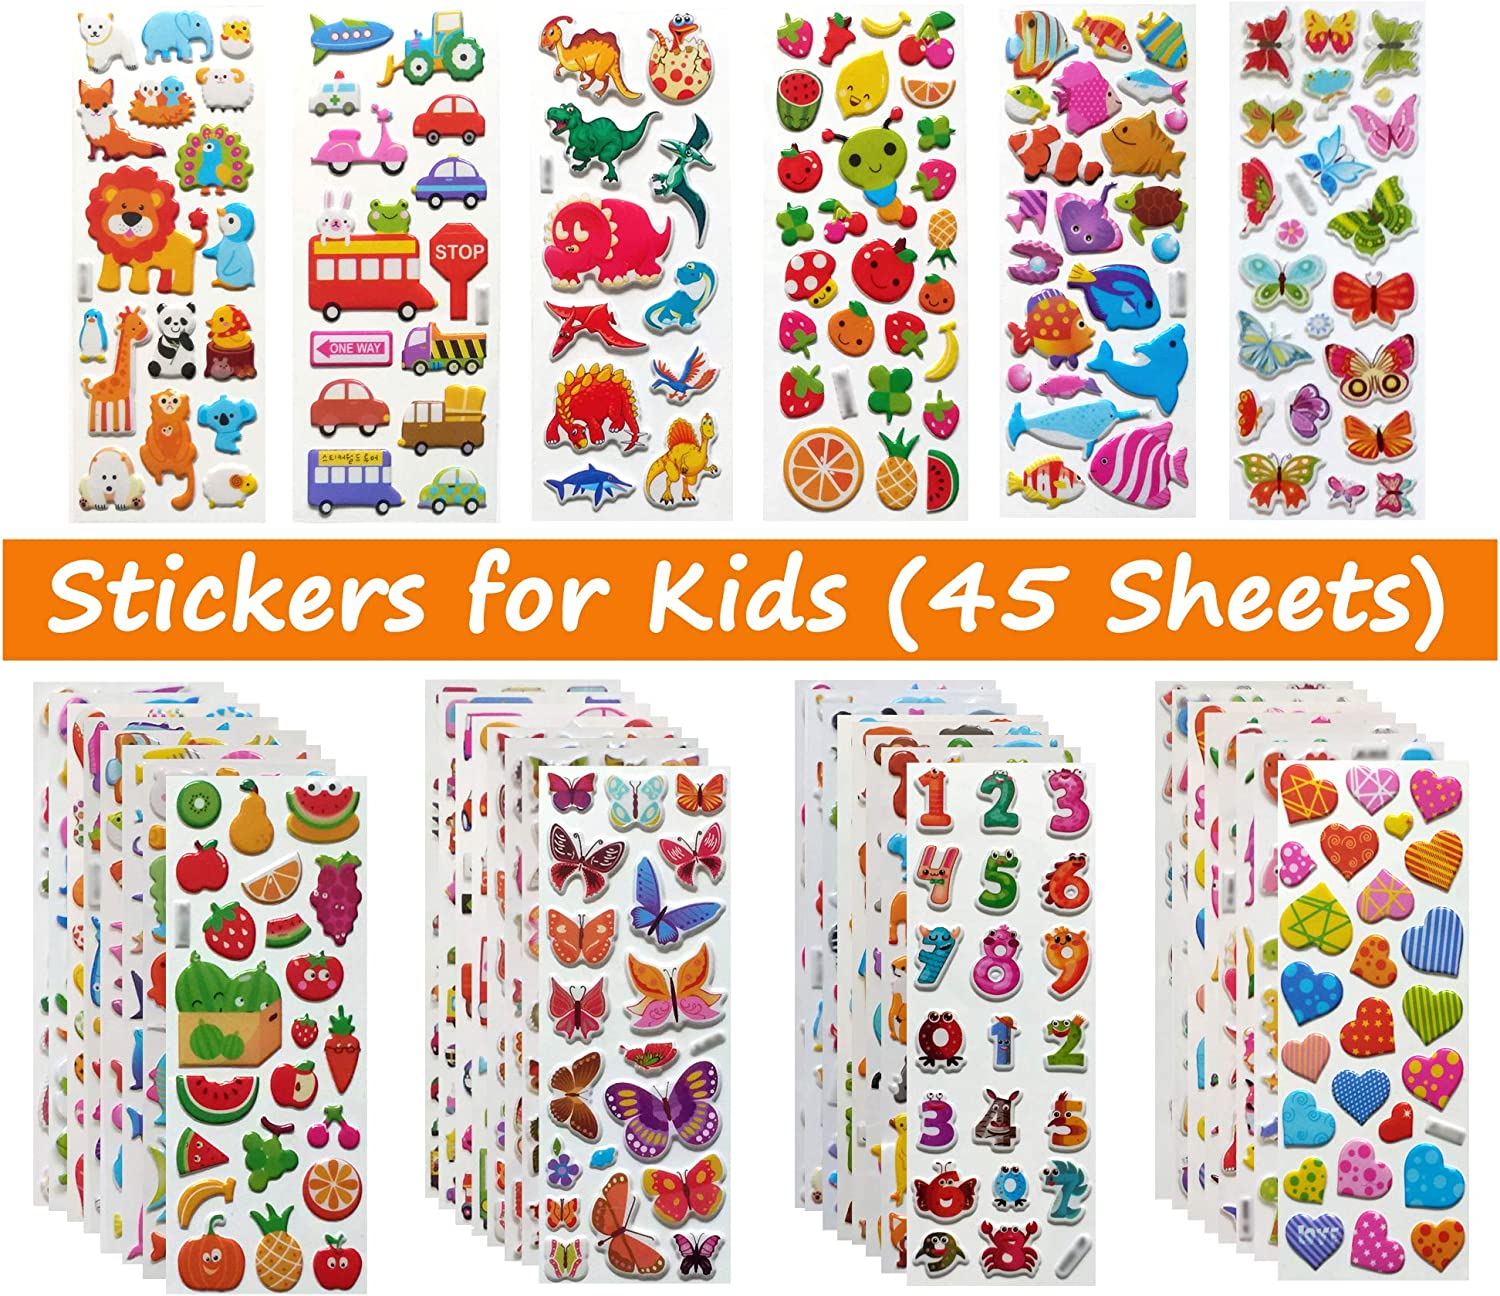 Stickers for Kids, Puffy Stickers for Toddlers, Great Gift for Girls and Boys - Best for 2, 3, 4, 5 Year Olds and Up (Stickers for Kids-A1.)